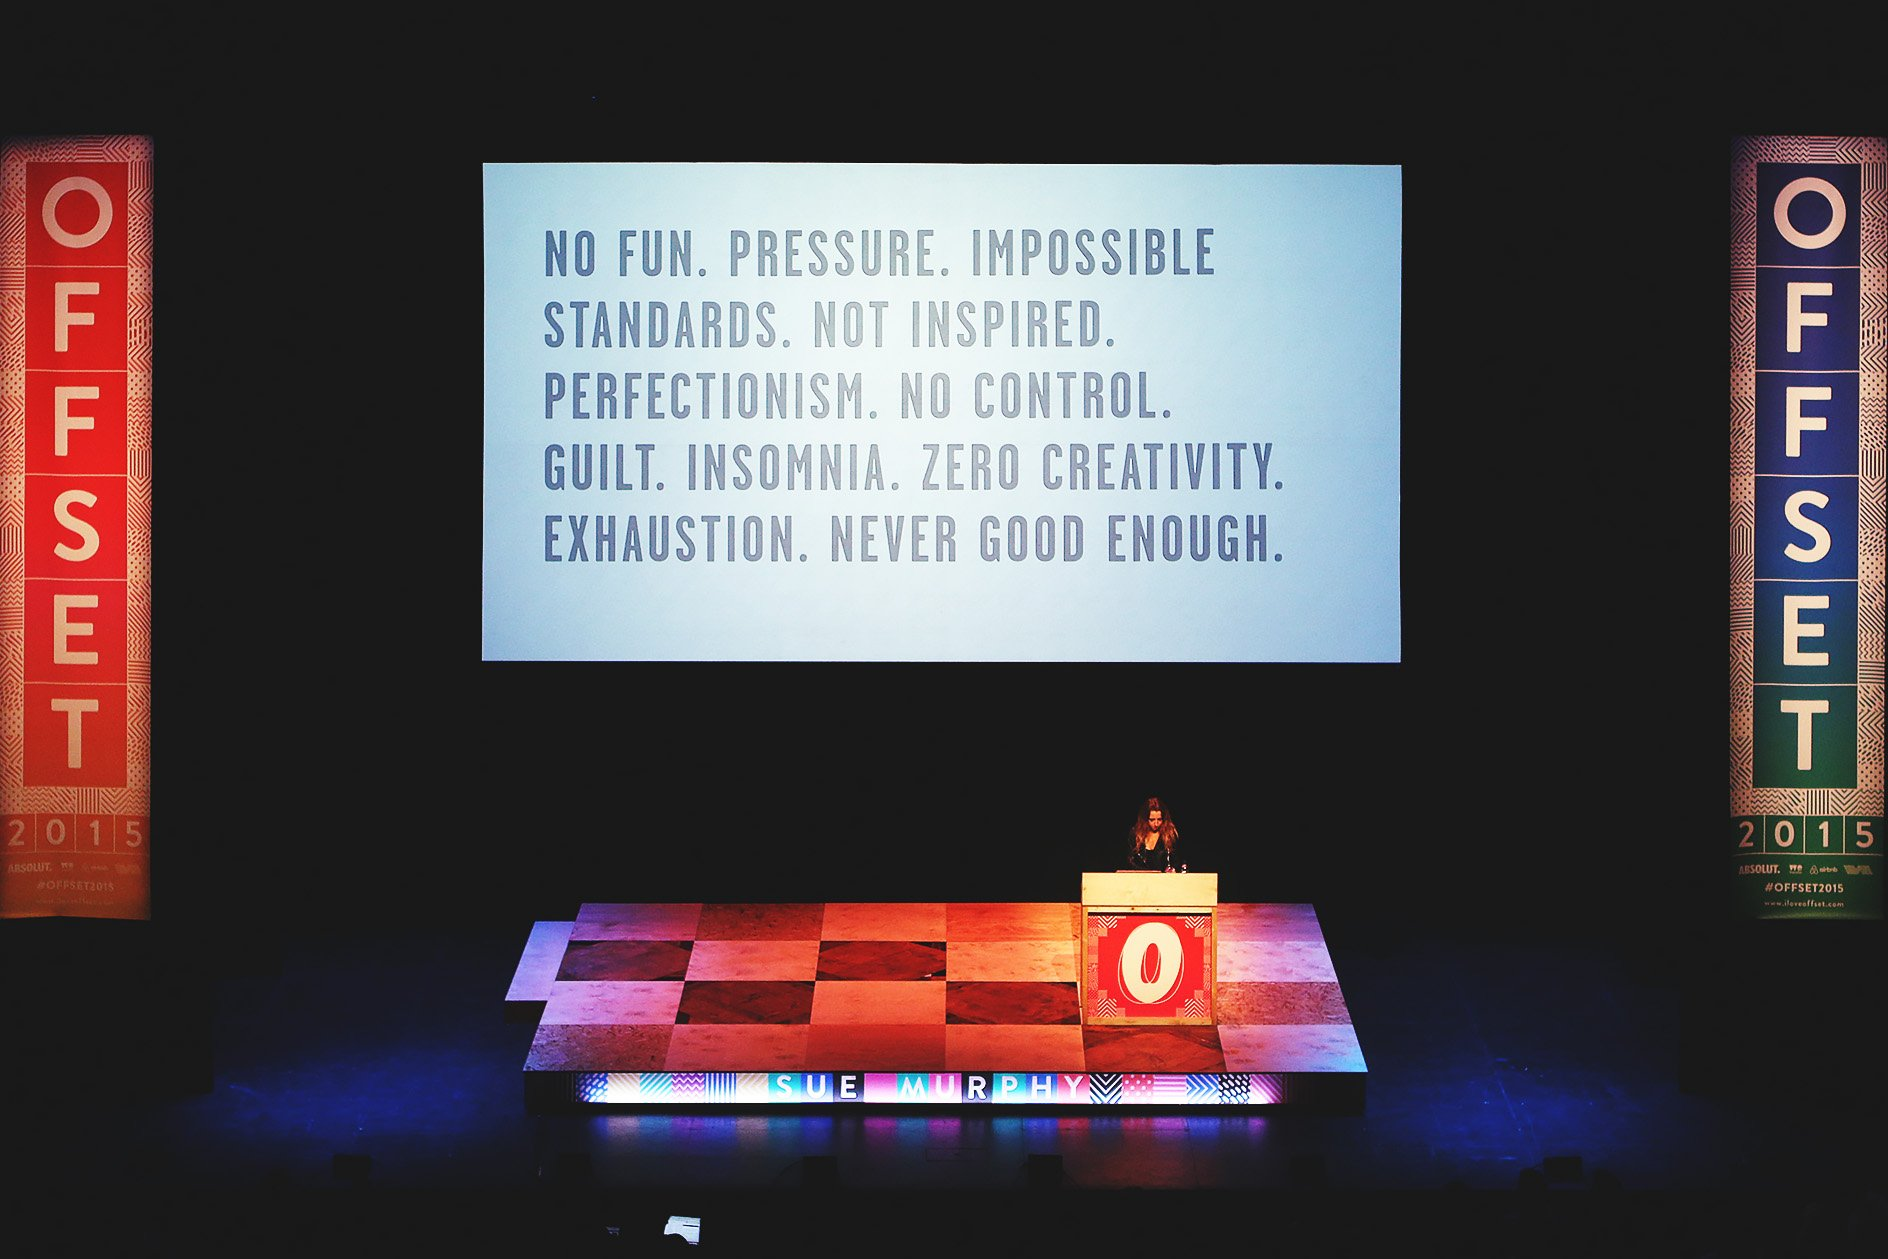 Sue Murphy at OFFSET 2015 – Corporate pressures